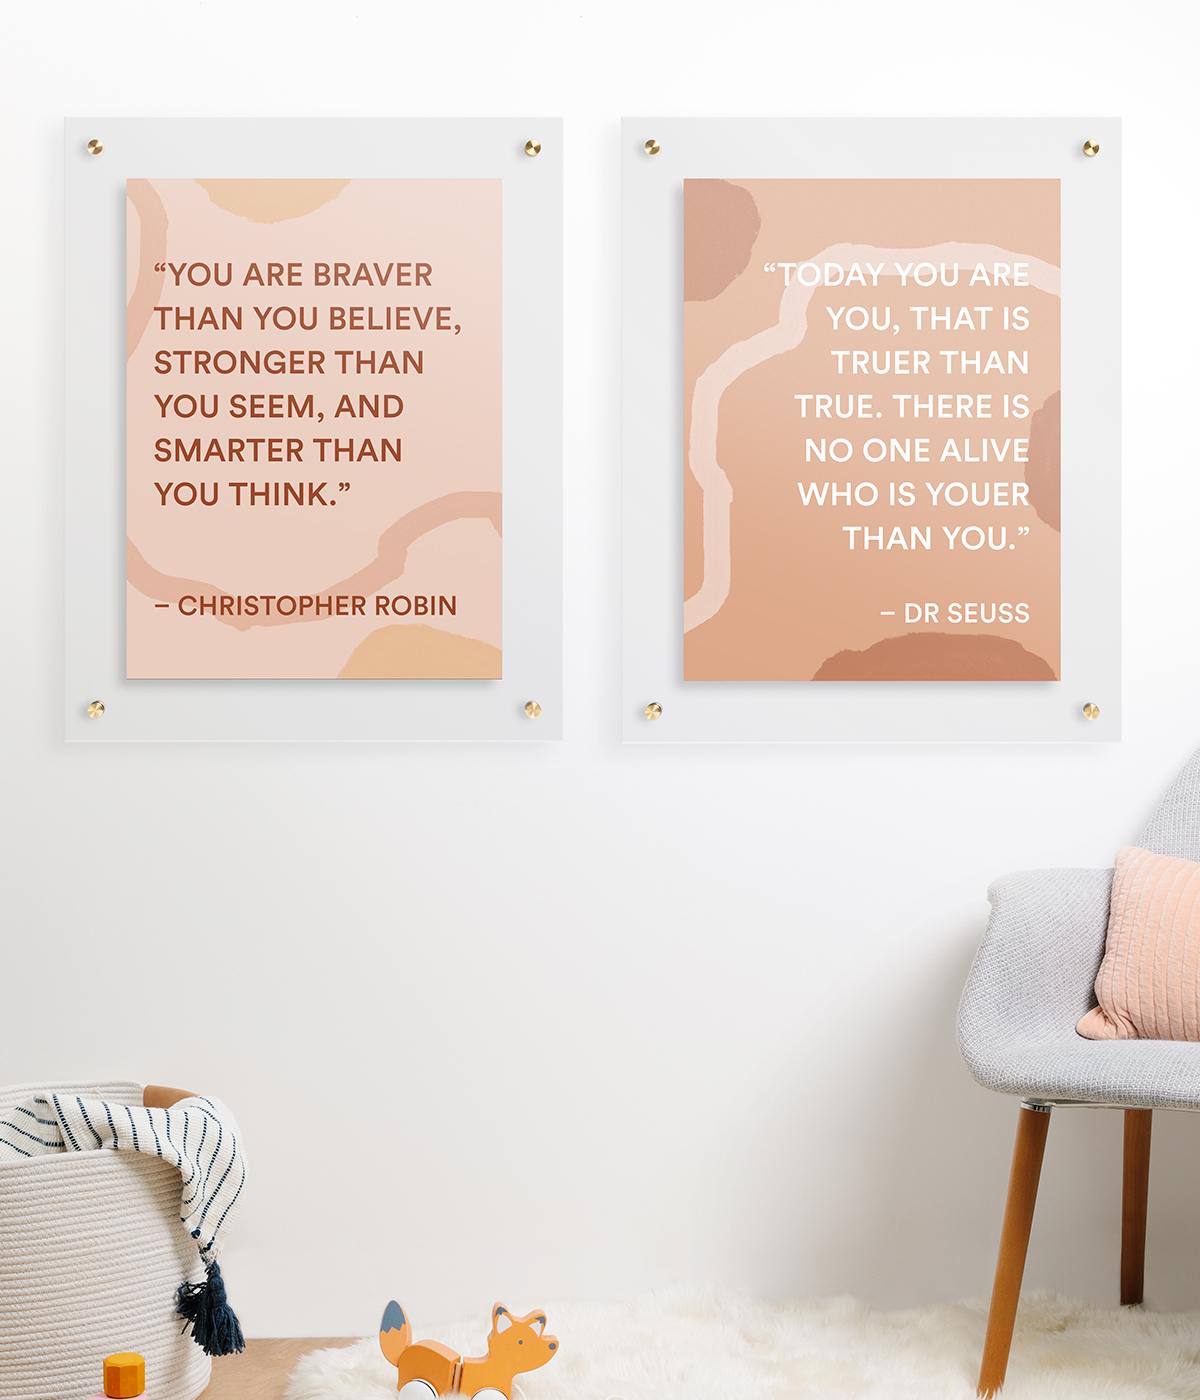 Two identical frames in nursery room with quotes from Dr. Seuss and Christopher Robin